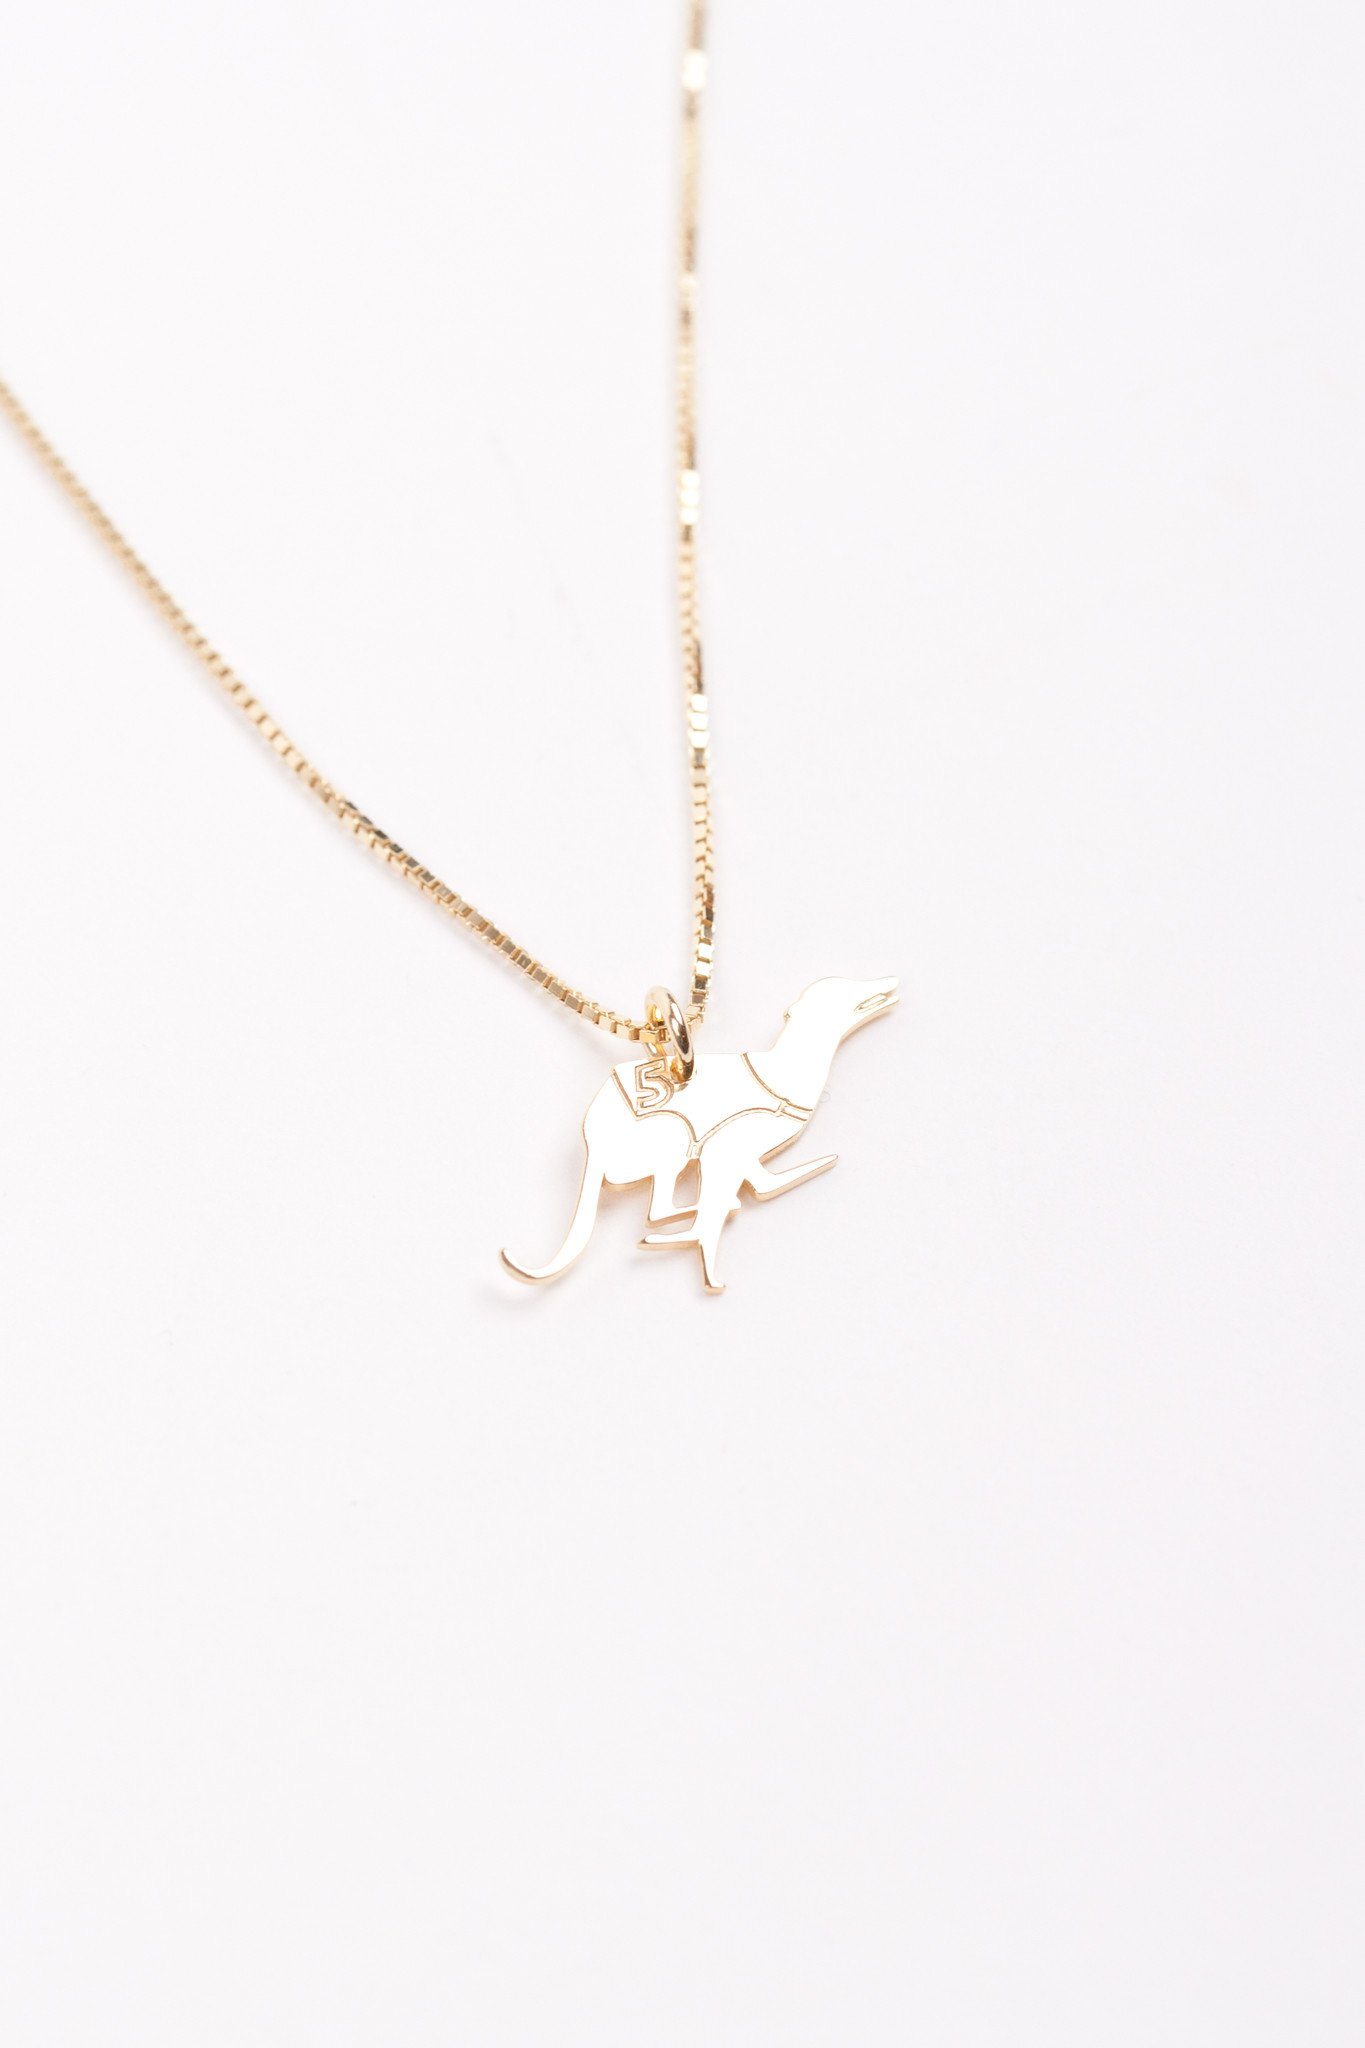 Jukserei - Winning dog necklace